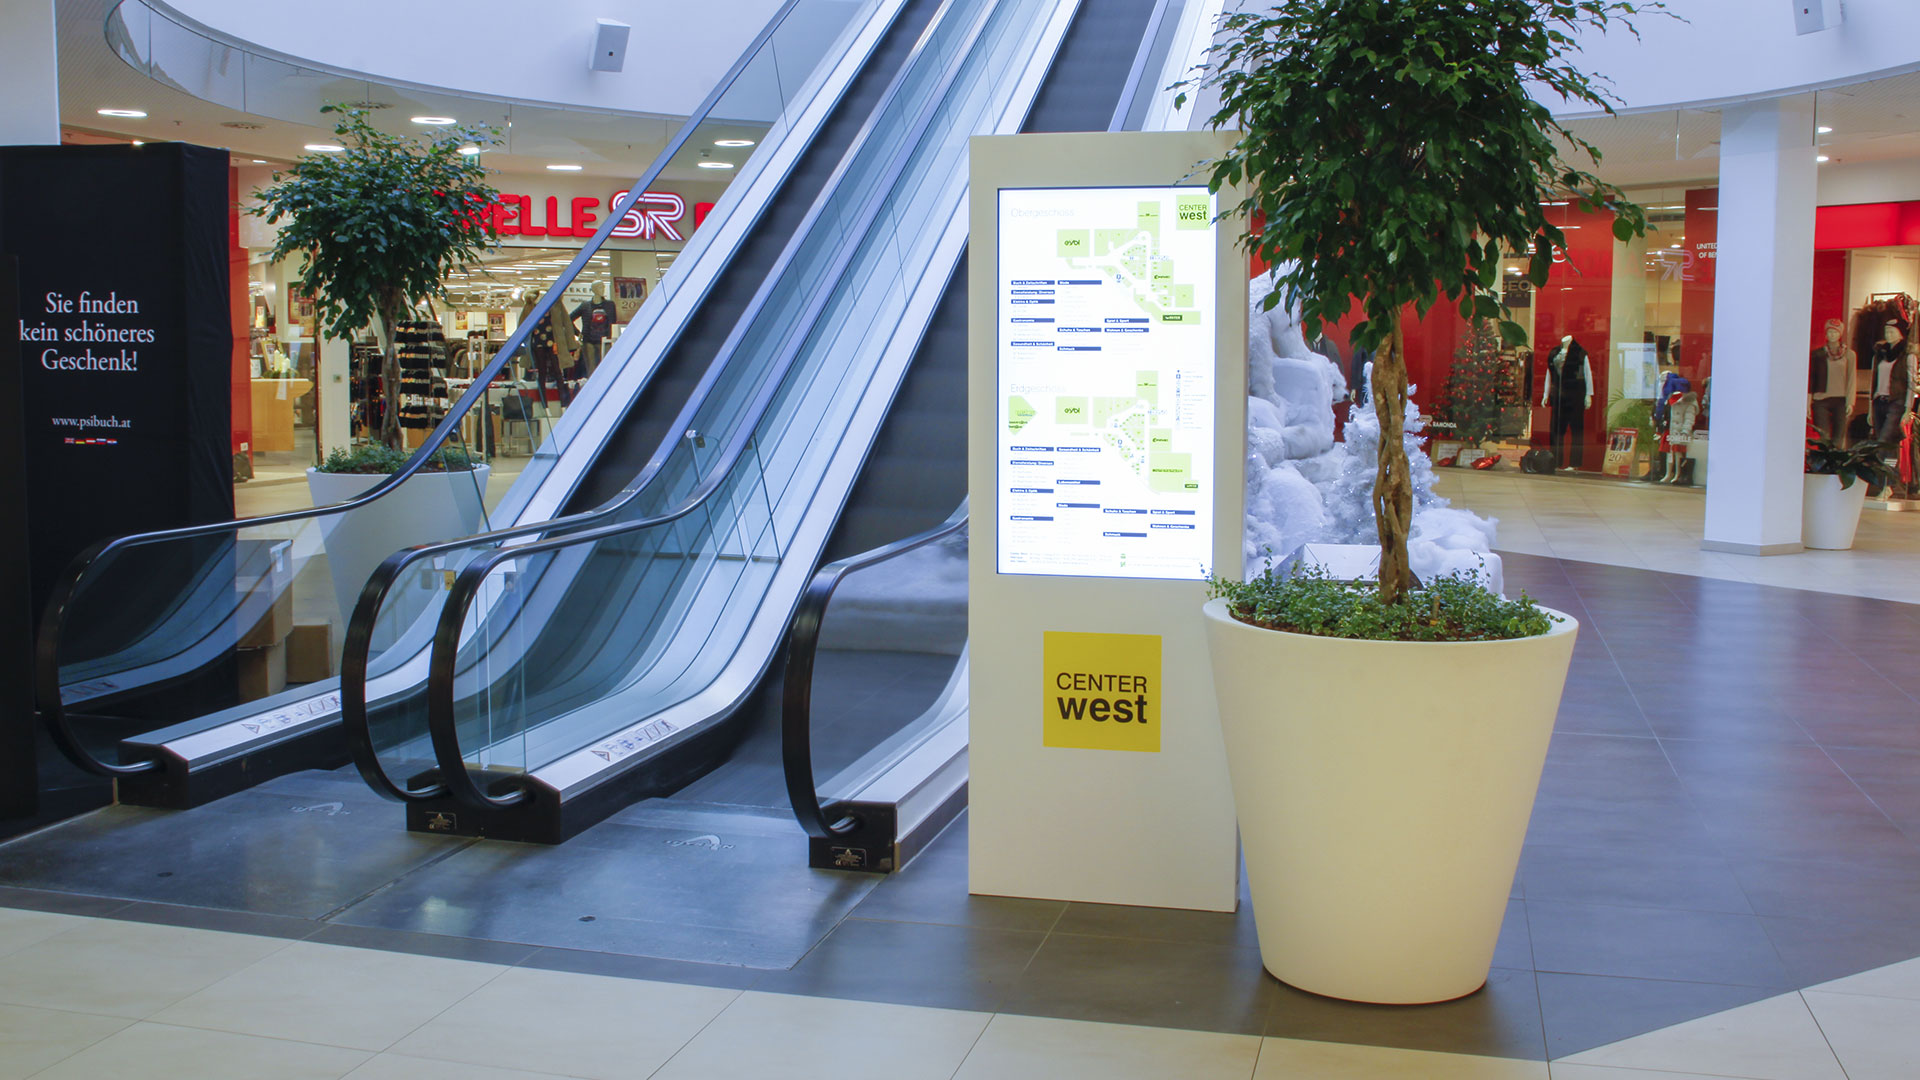 Shopping Center West Graz Digital Signage